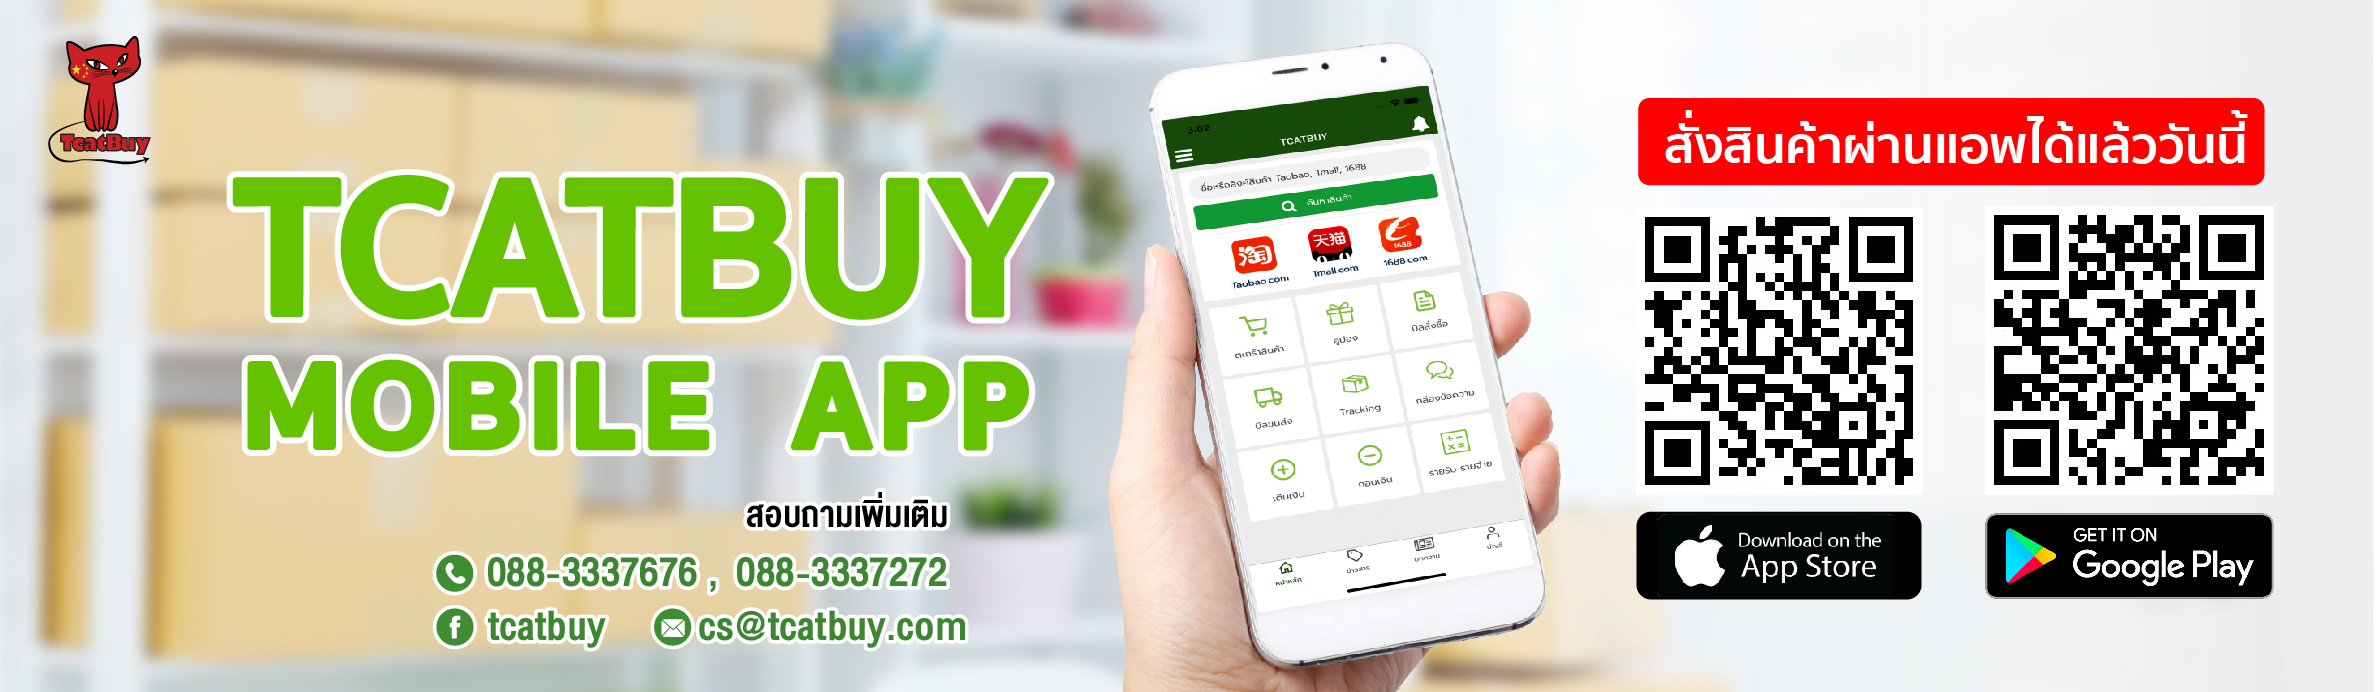 TCATBUY MOBILE APP